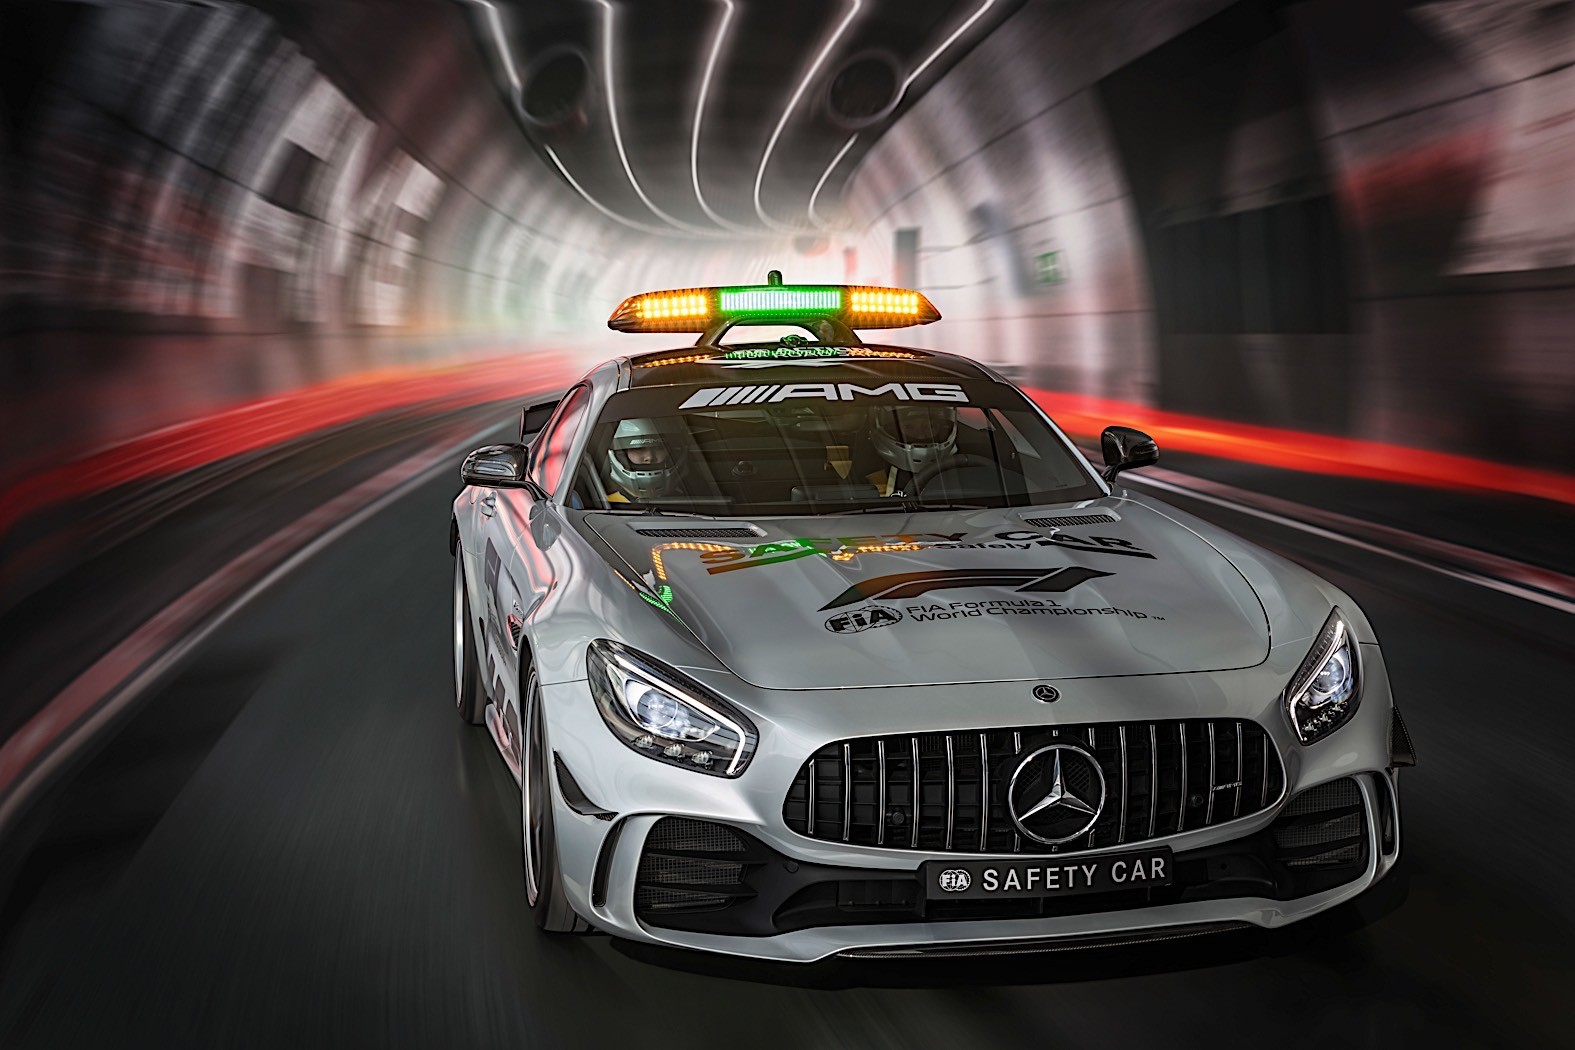 History Of The Formula 1 Safety Car